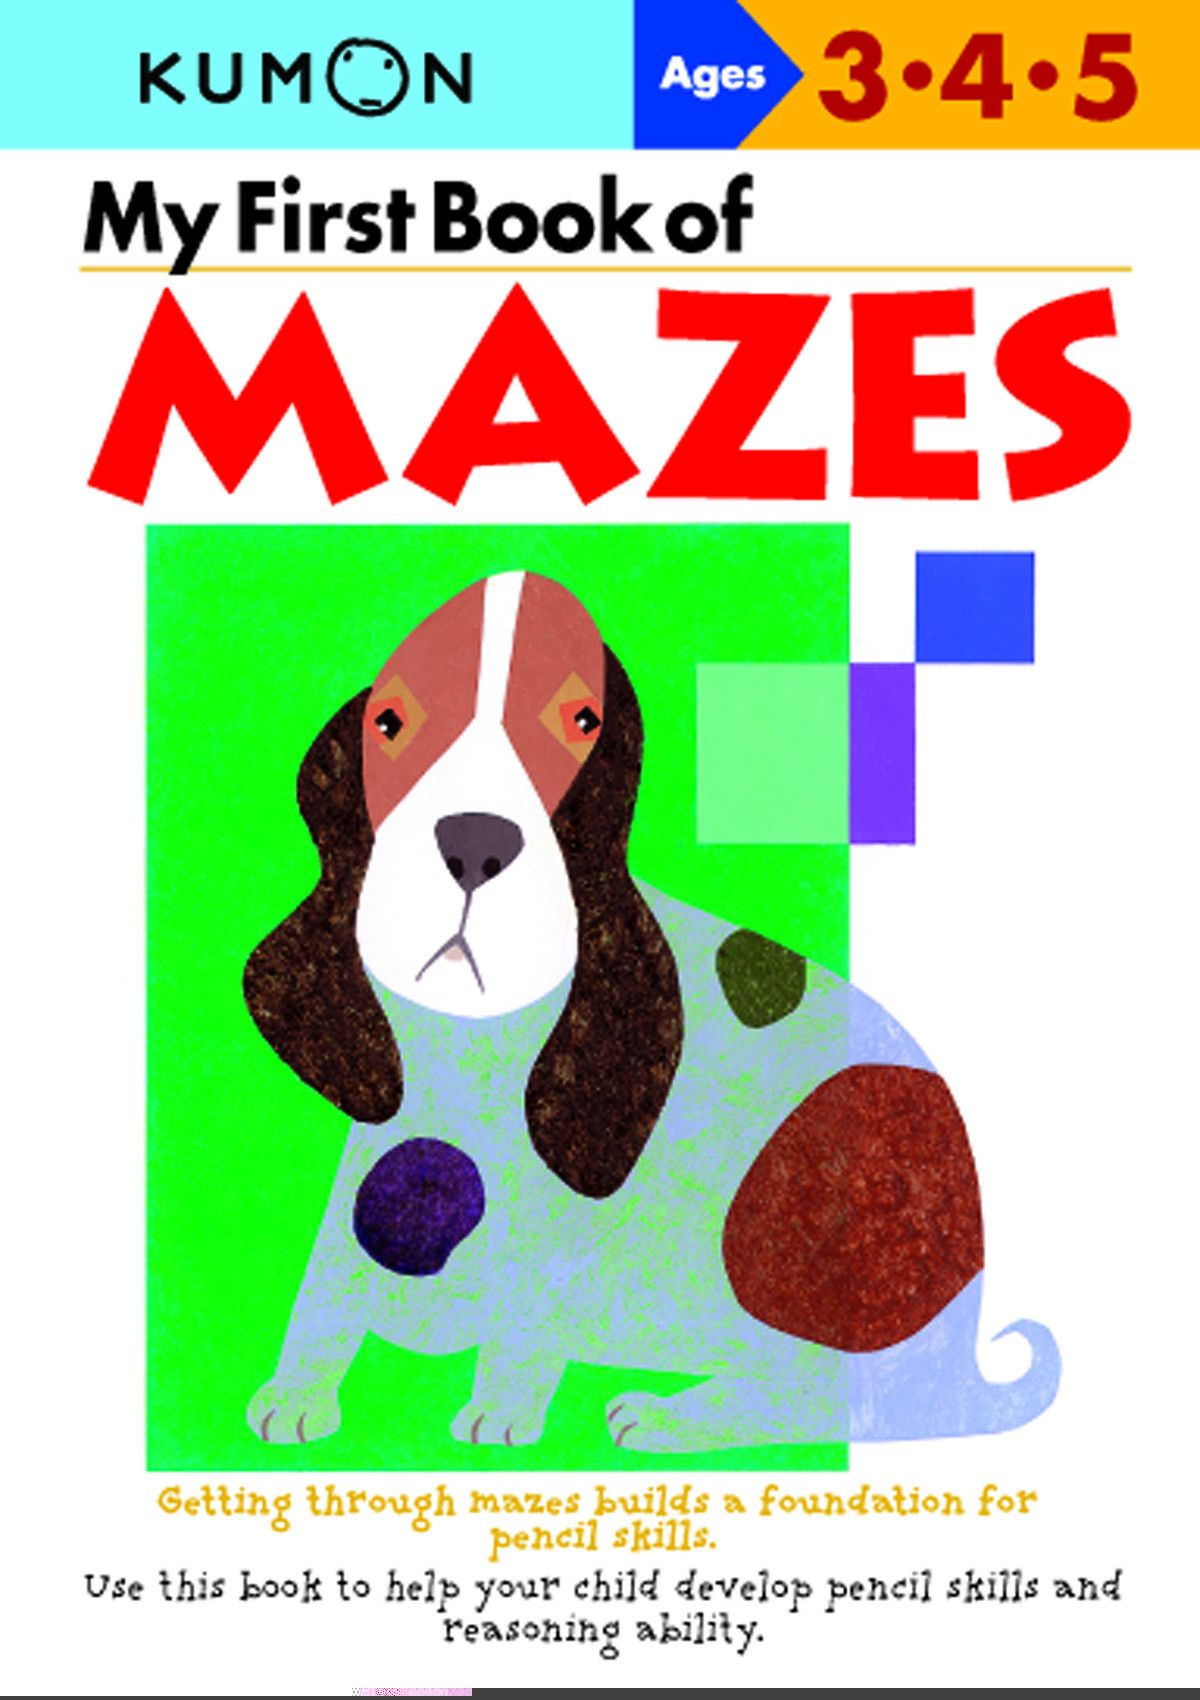 My first Book of Mazes Ages 3 - 4 - 5 Kumon